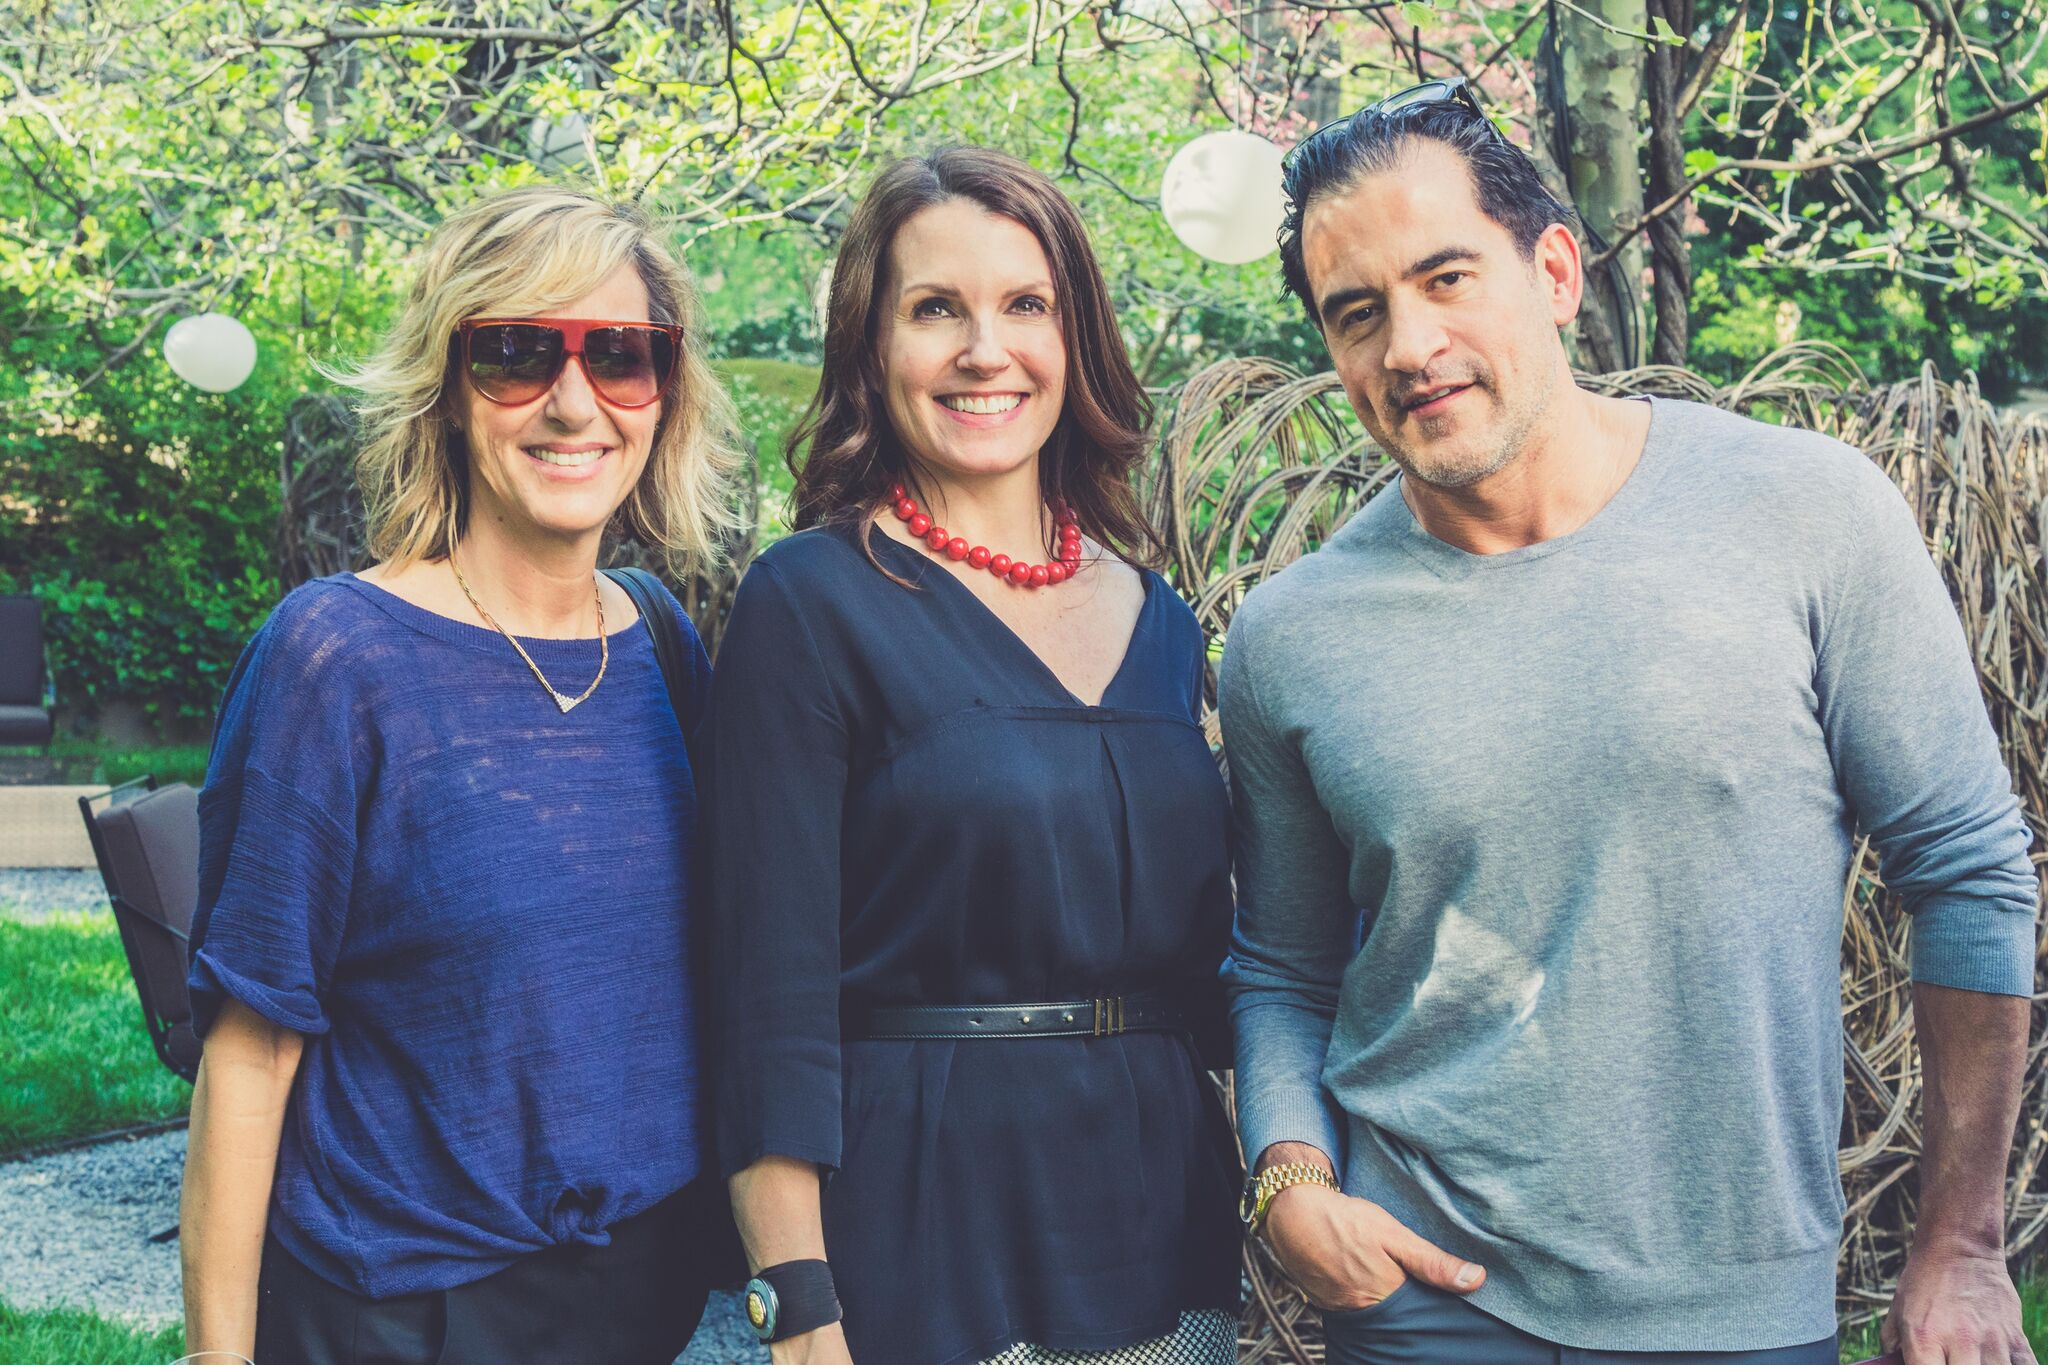 Ginna Christensen, Gina Dewitt and Rodrigo Vargas in the garden of the Bulgari Hotel